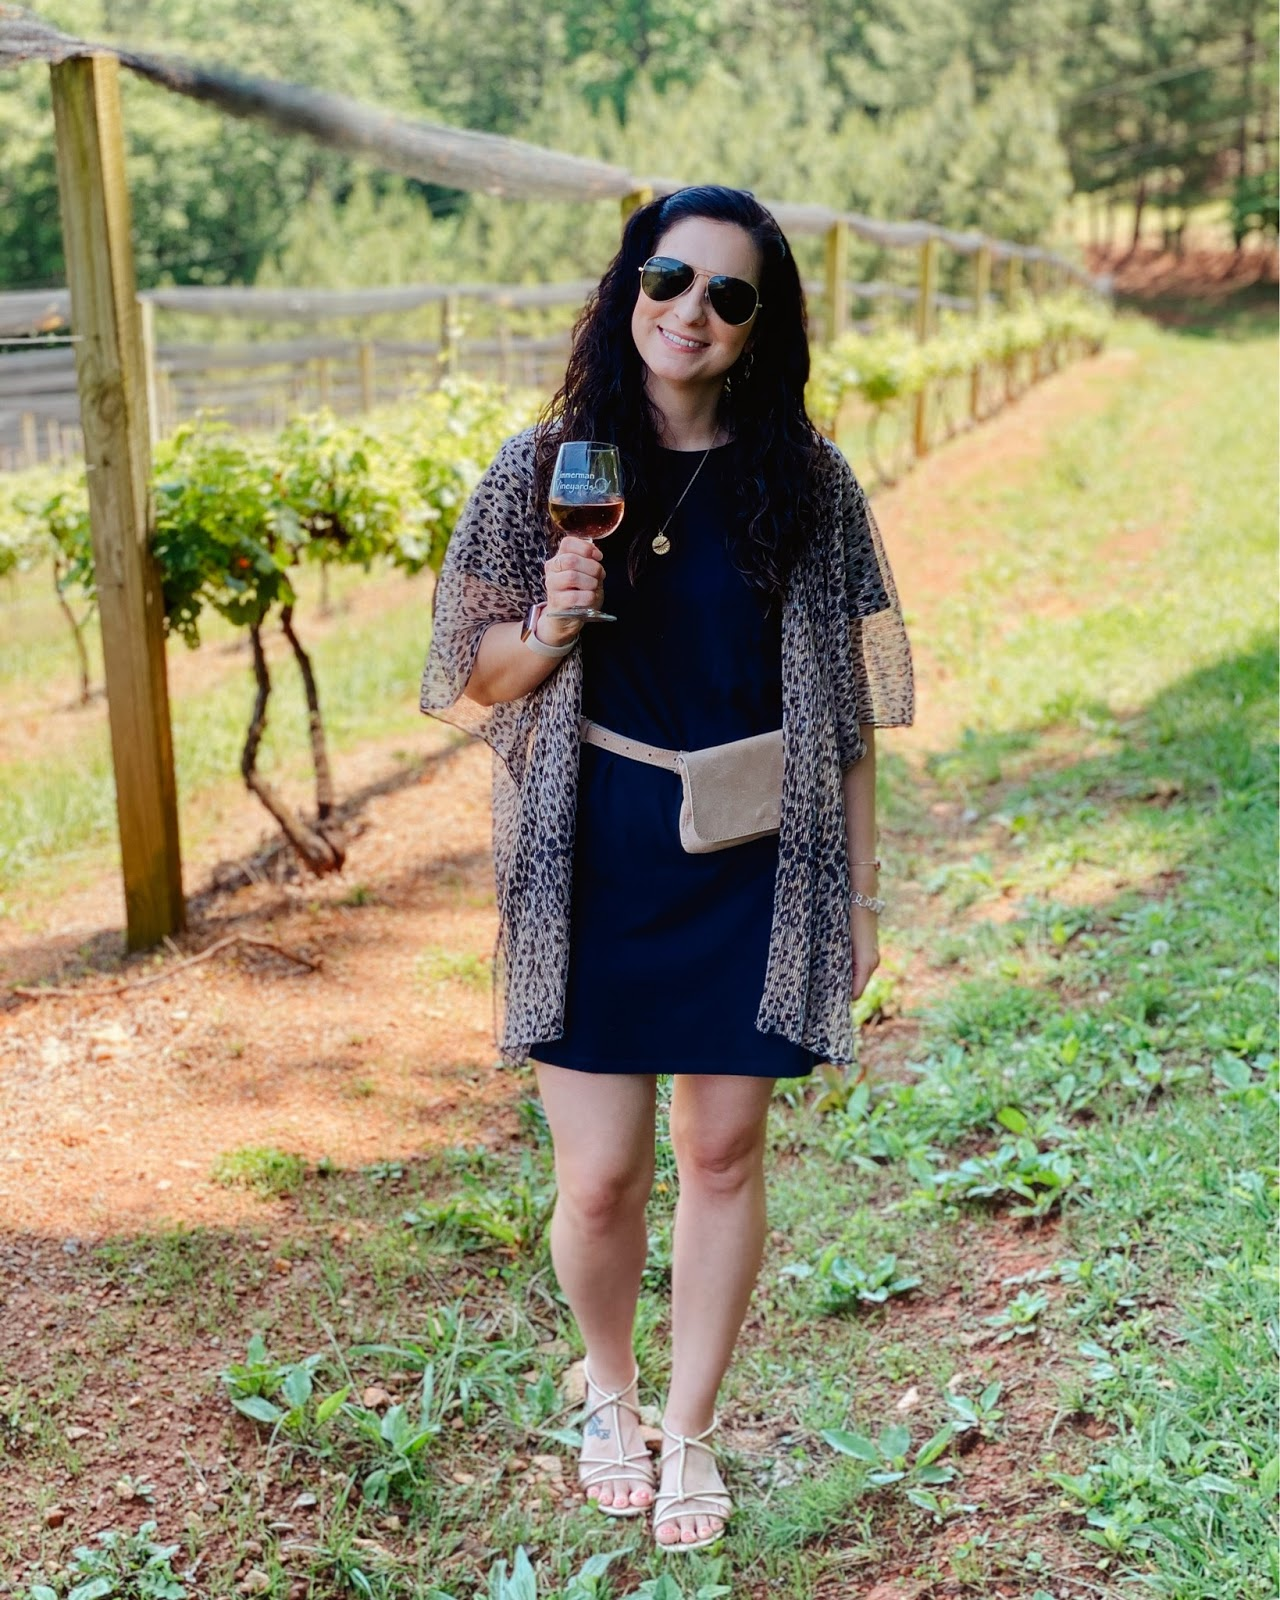 instagram roundup, style on a budget, spring style, summer outfits, nc blogger, north carolina blogger, style on a budget